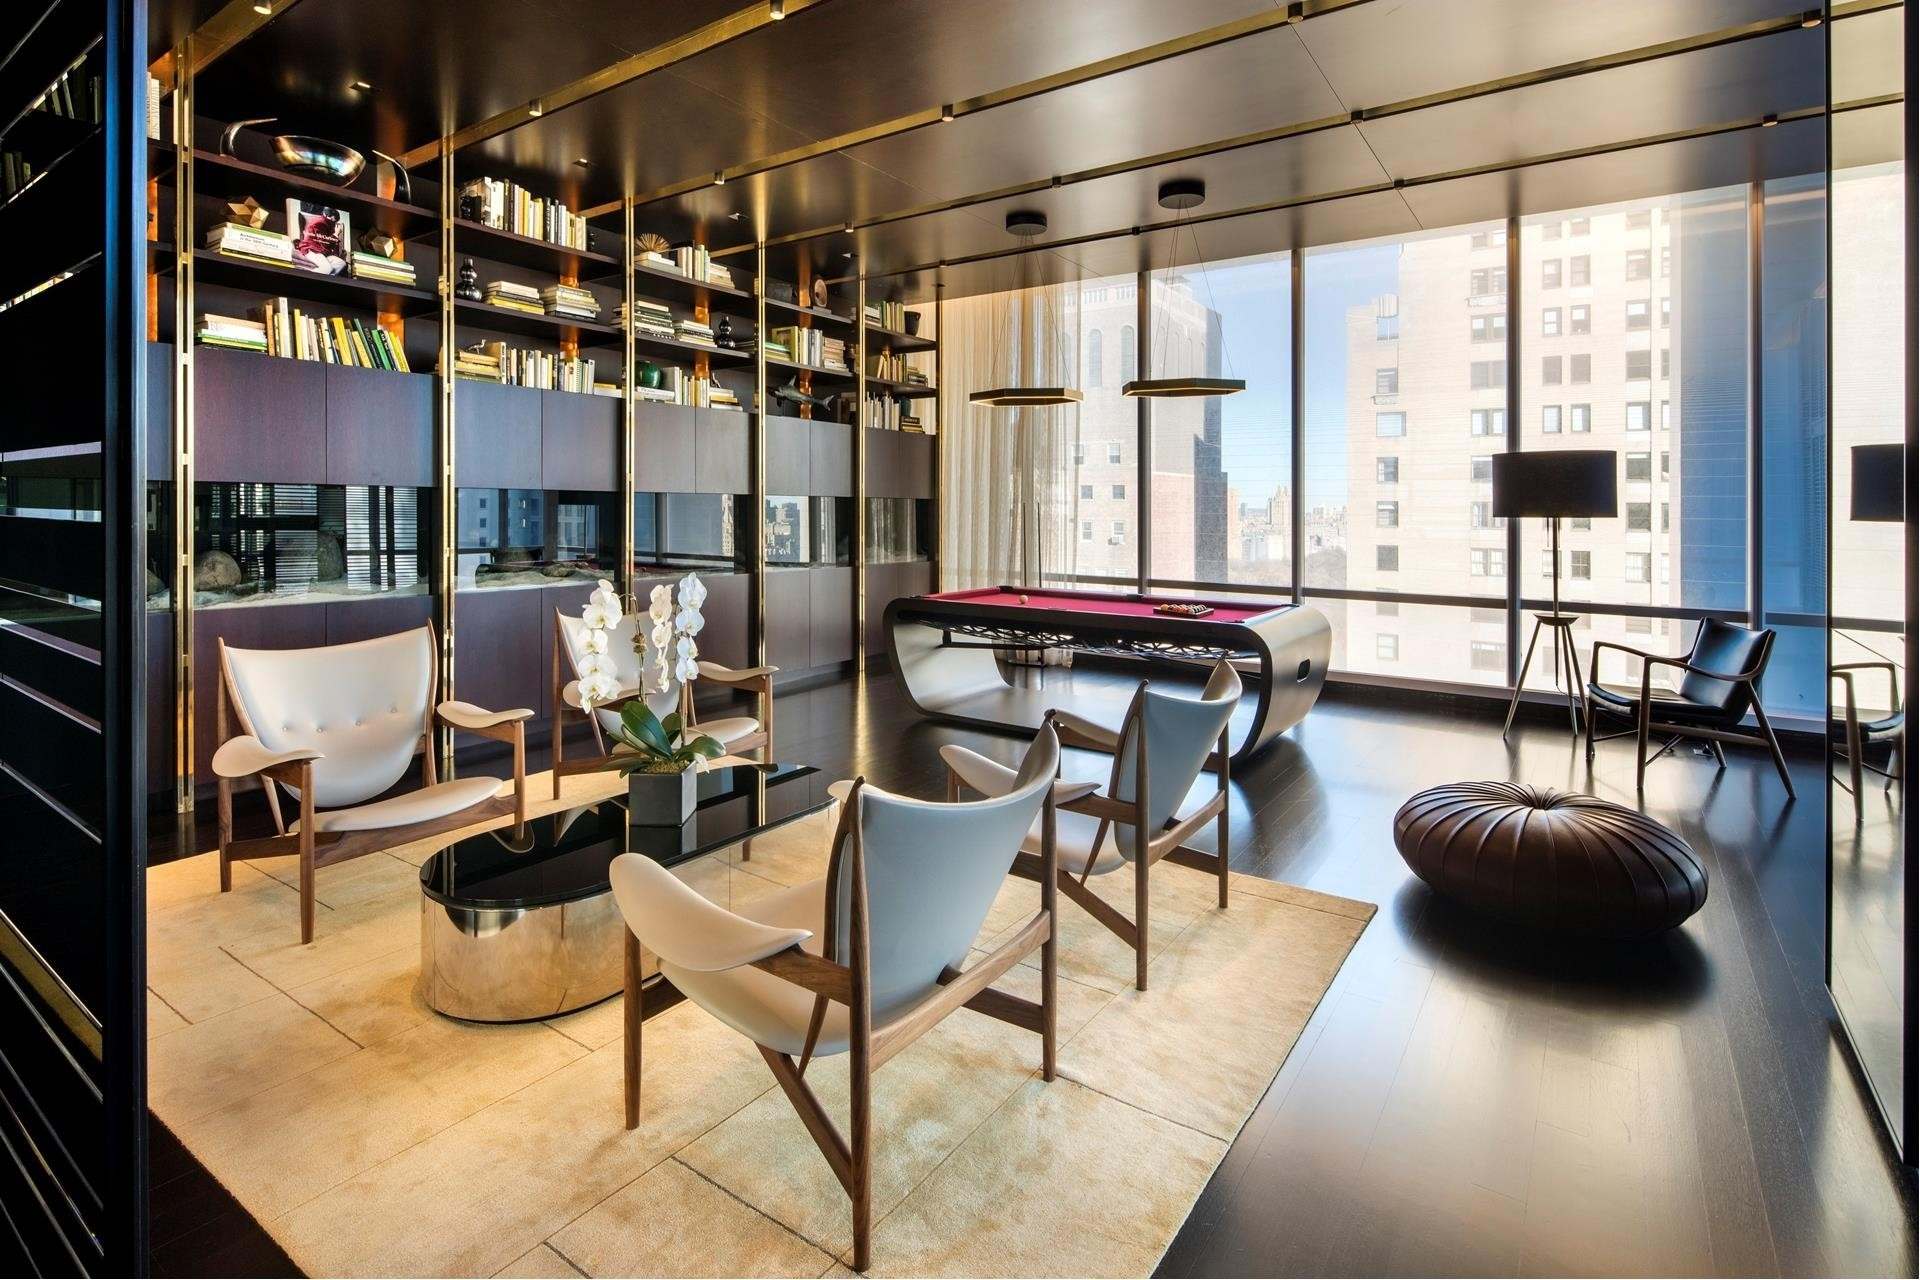 19. Condominiums for Sale at One57, 157 West 57th St, 45C Midtown West, New York, NY 10019